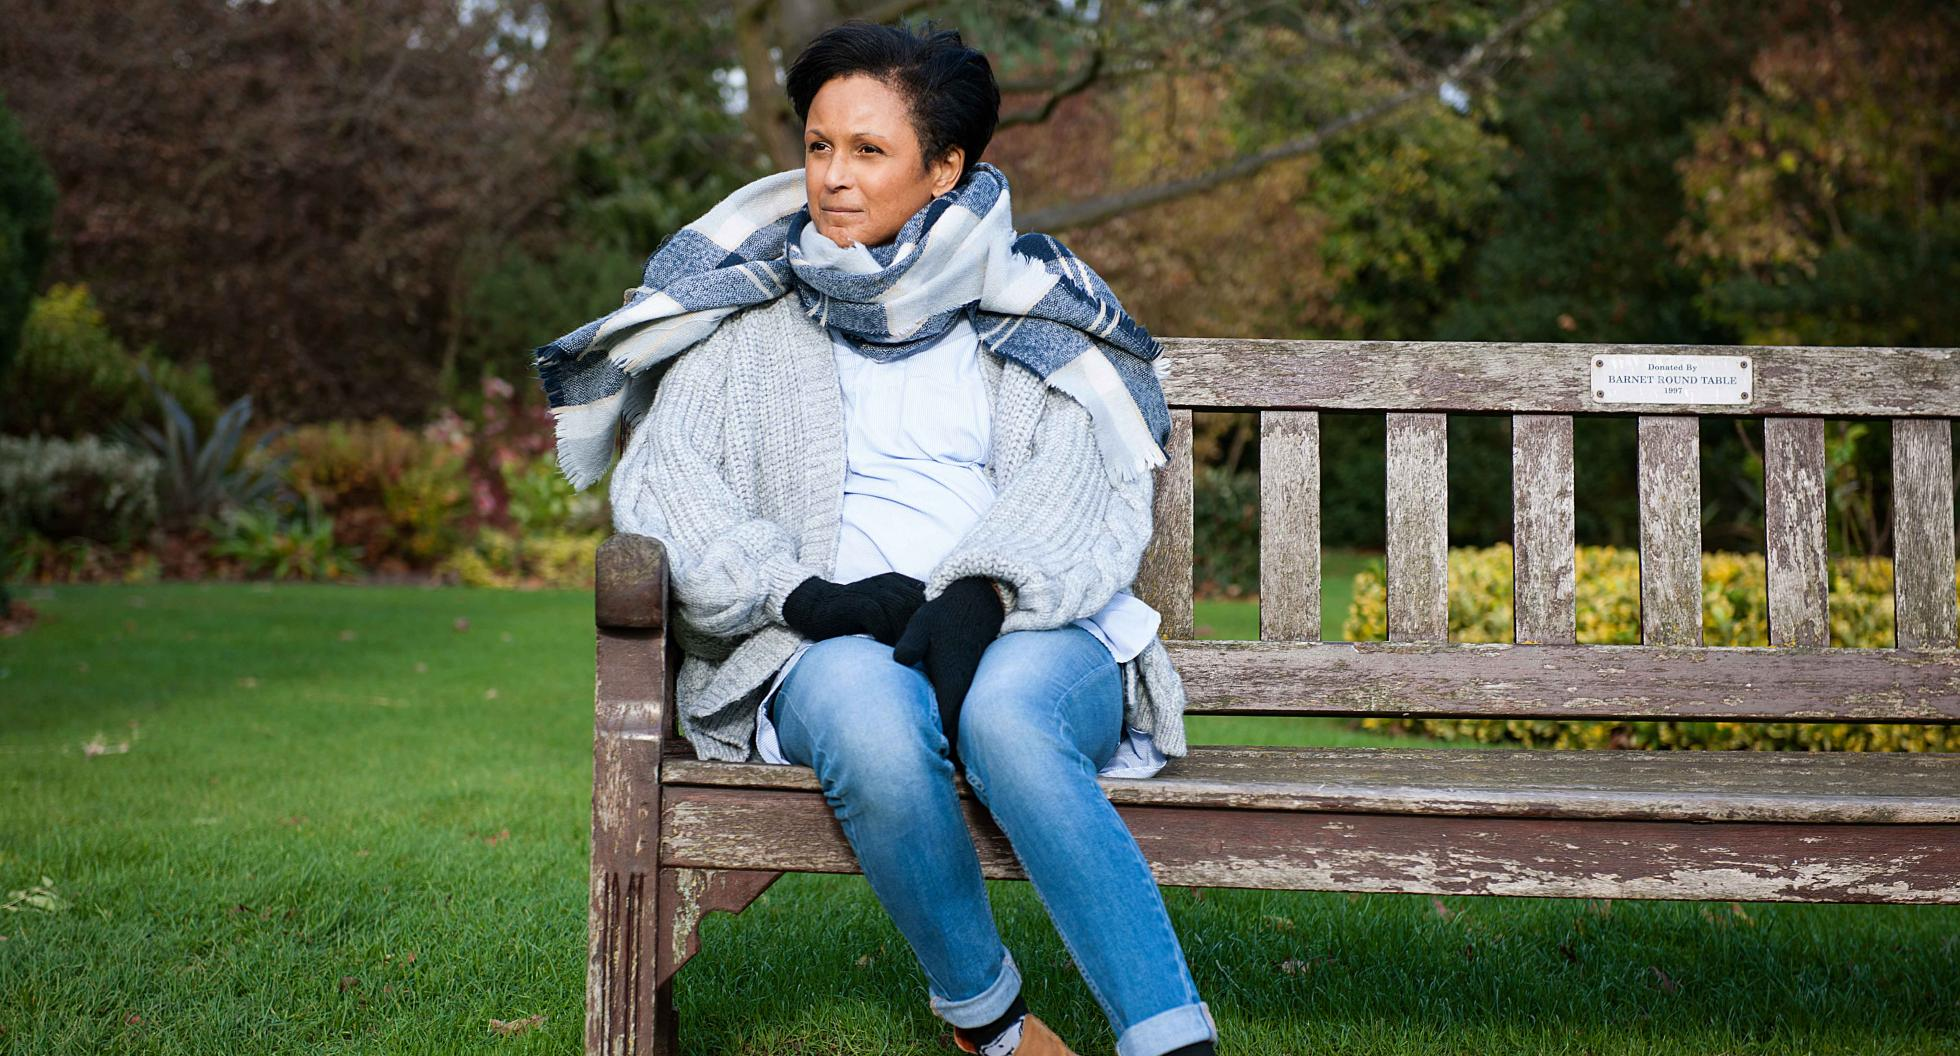 scleroderma patient sitting on park bench